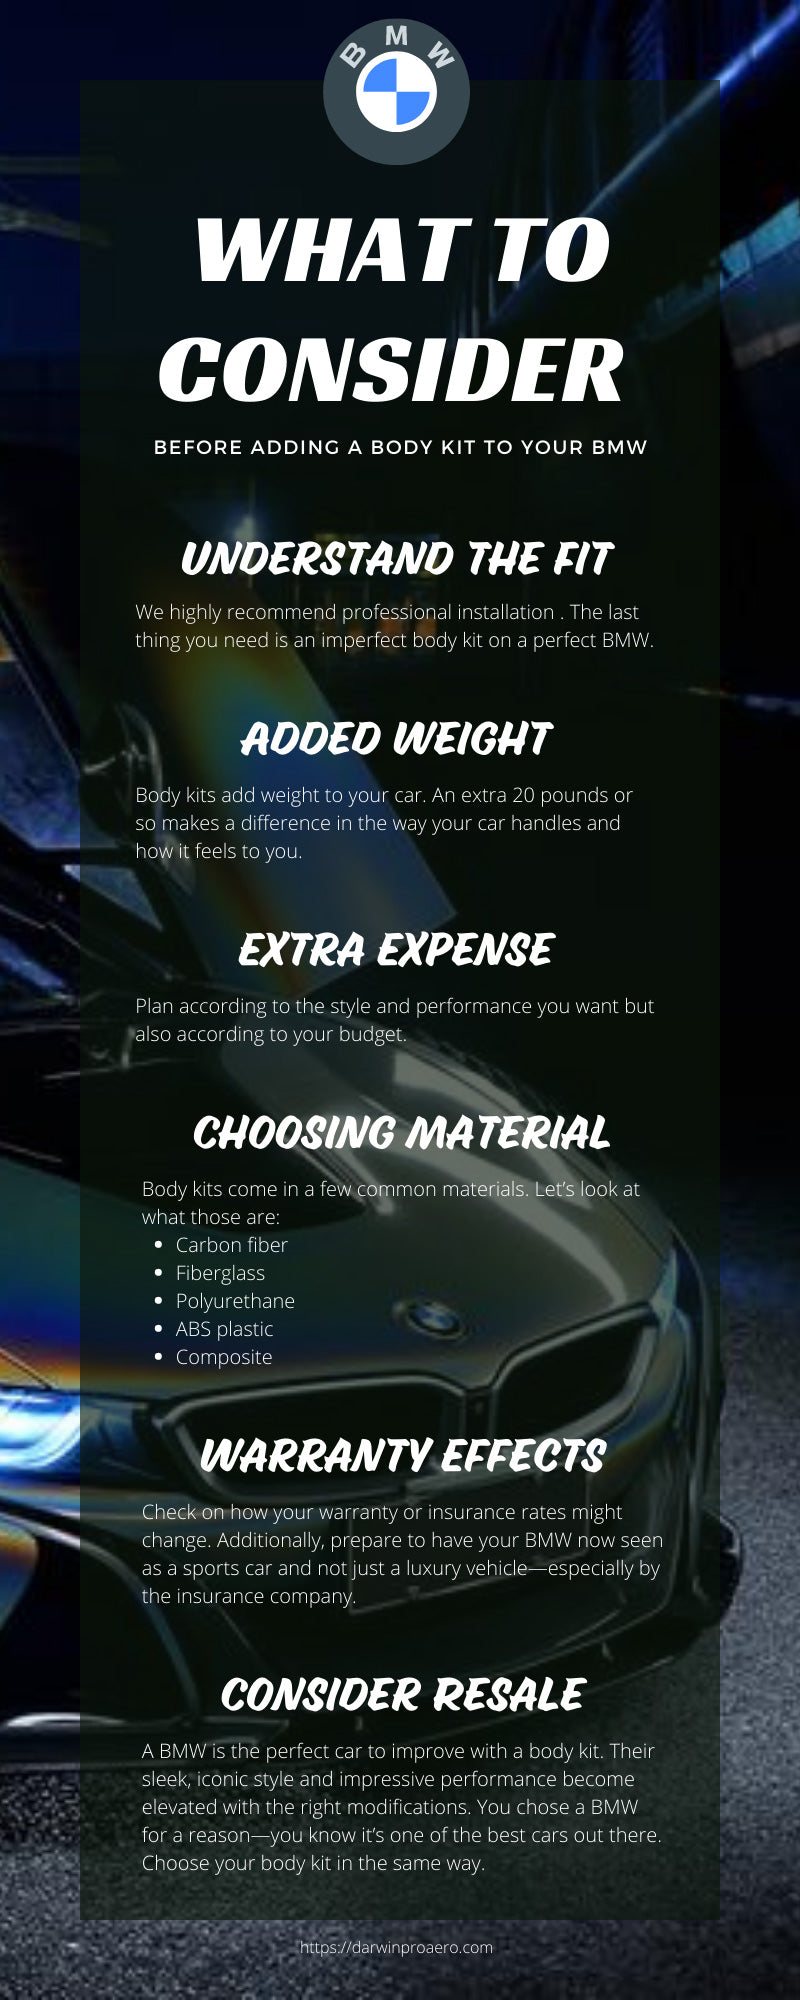 What To Consider Before Adding a Body Kit to Your BMW